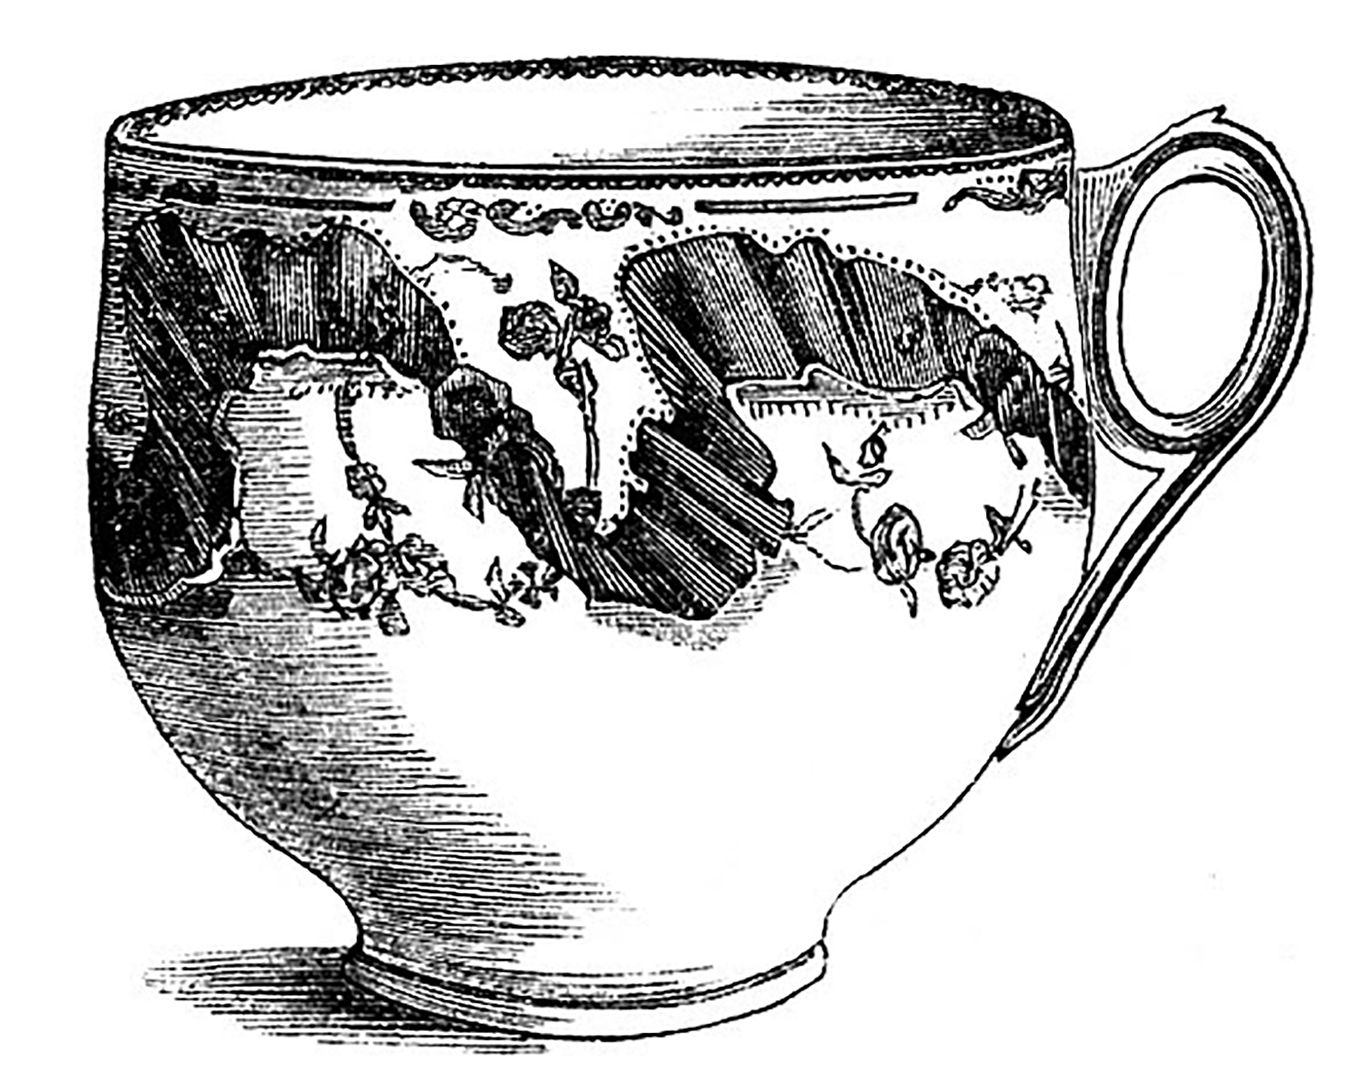 Fancy teacup clipart jpg royalty free library 10 Black and White Teacup Clip Art Images - The Graphics Fairy jpg royalty free library